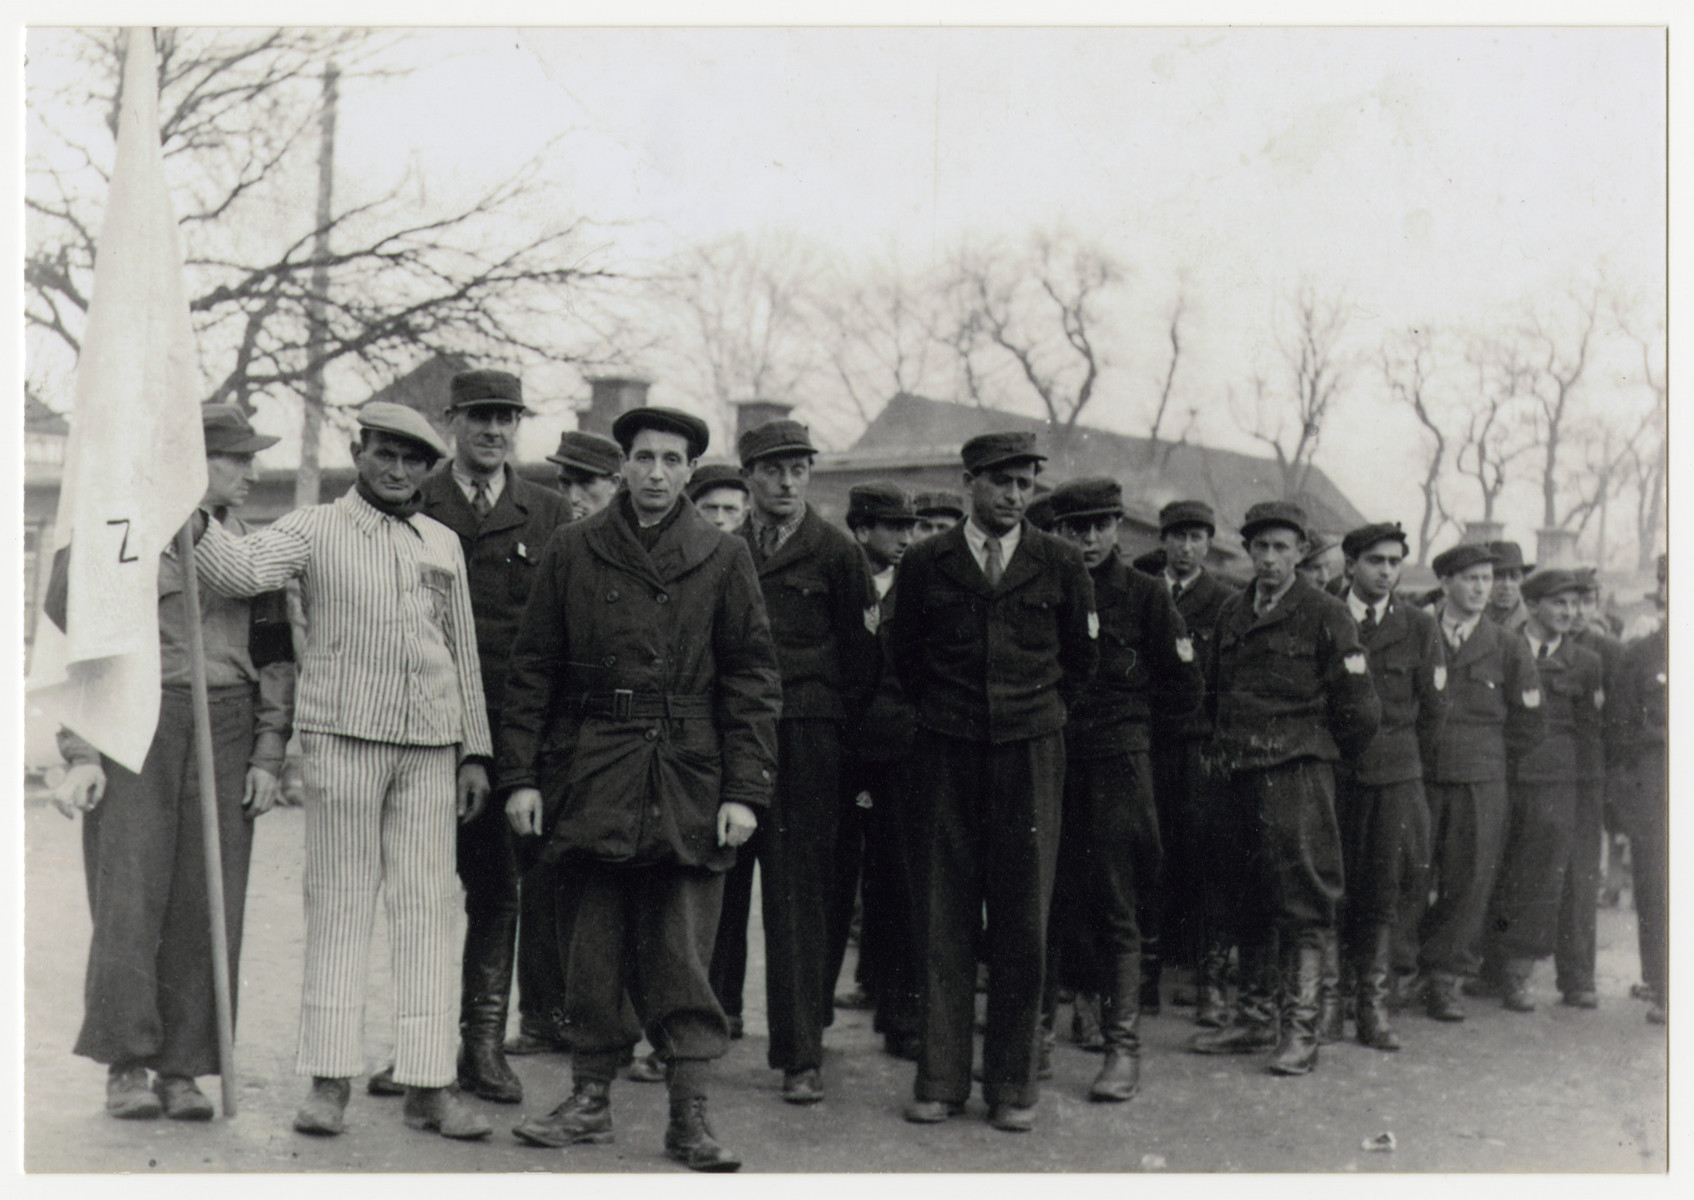 Jewish police line up behind a man wearing a concentration camp uniform at a memorial event [probably in the Steyr displaced persons camp].